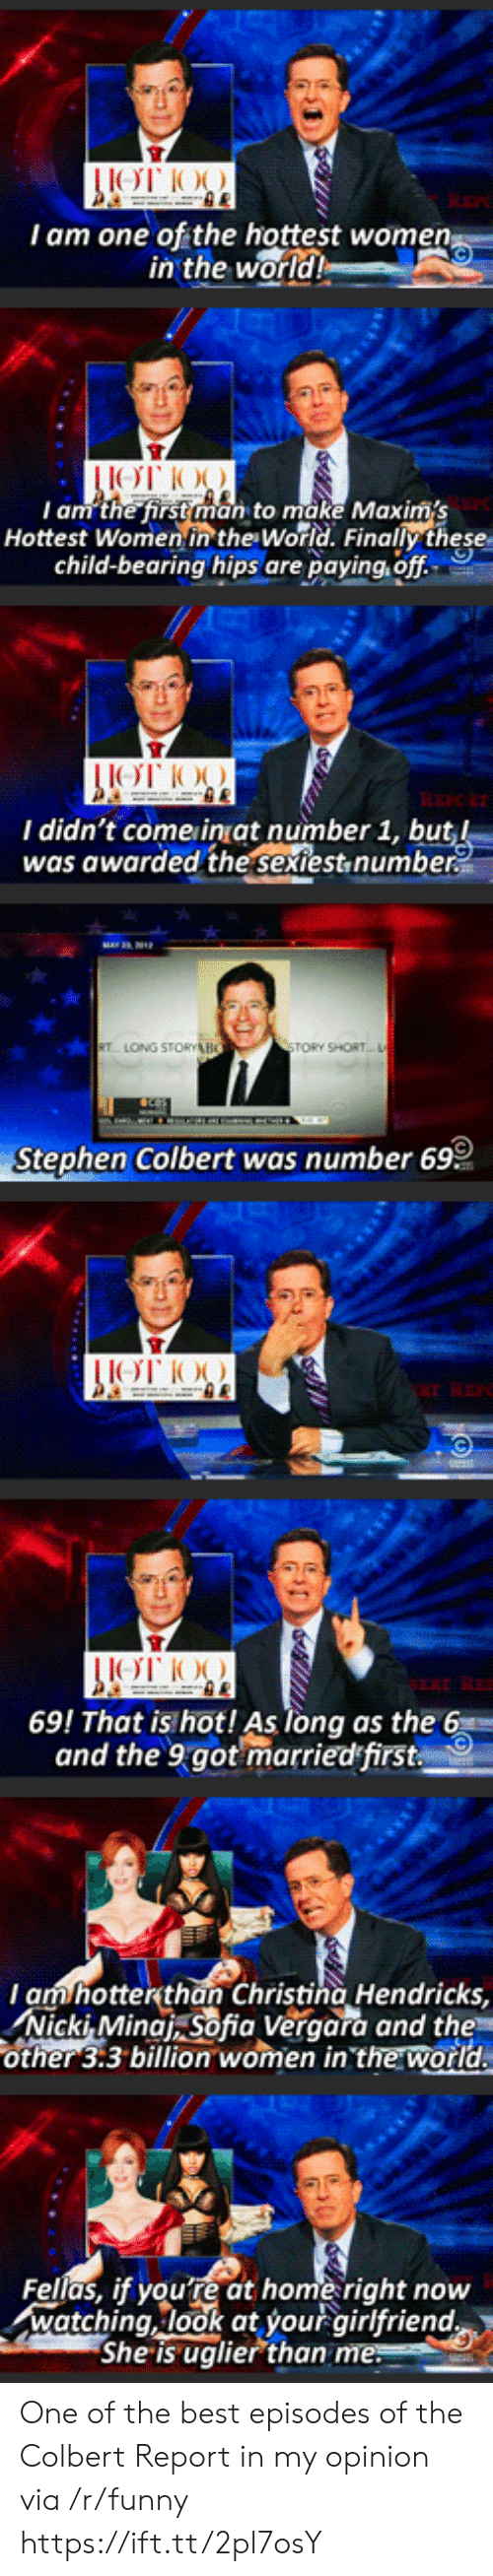 Tory: I am one of the hottest wome  in the  world  I am the first man to make Maxims  Hottest Women in the World. Finally these  child-bearing hips are paying, off  I didn't come inat number 1, bu  was awarded the sextest,numbe  TORY SHORT  Stephen Colbert was number 69  69! That is hot! As long as the 6  and the 9got marriedfirst  am hotterthan Christina Hendricks,  Nicki, Minat sofia Veraara and the  other 3:3 billion women in the world  Fellas, if youre at home right now  watching, look at your airlfriend  She is uglier than One of the best episodes of the Colbert Report in my opinion via /r/funny https://ift.tt/2pl7osY